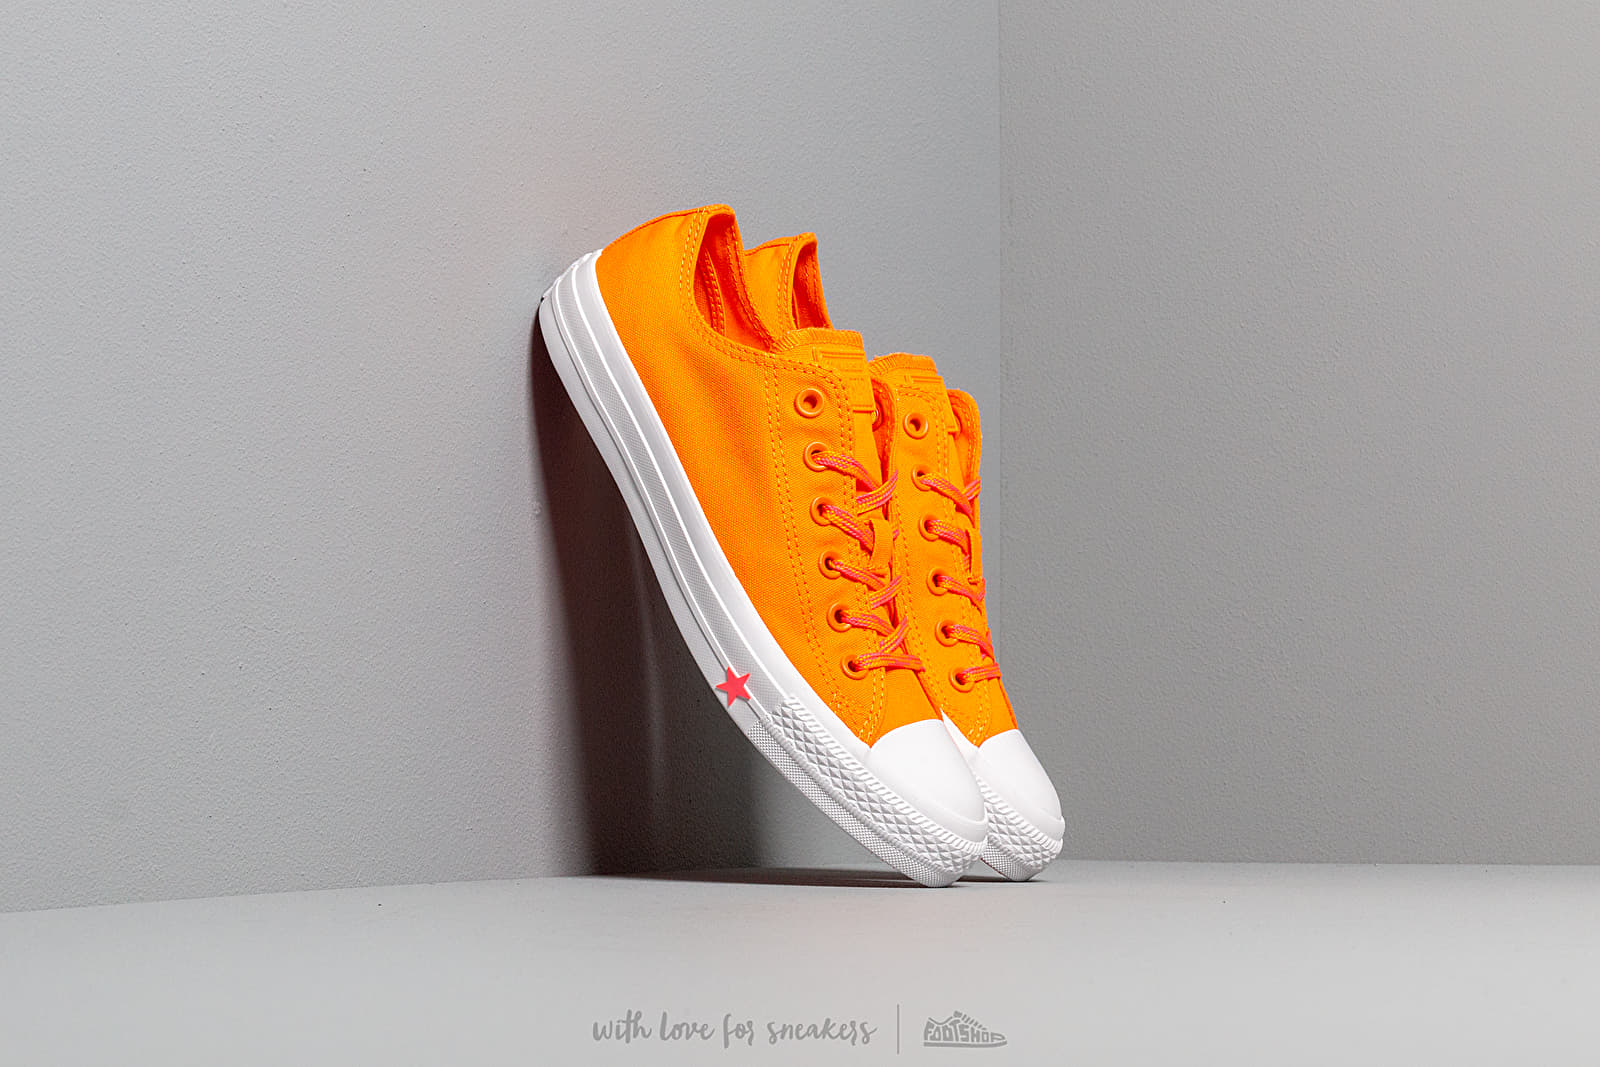 d5183edfebea9 Converse Chuck Taylor All Star Orange Rind/ Racer Pink/ White W super cenie  338